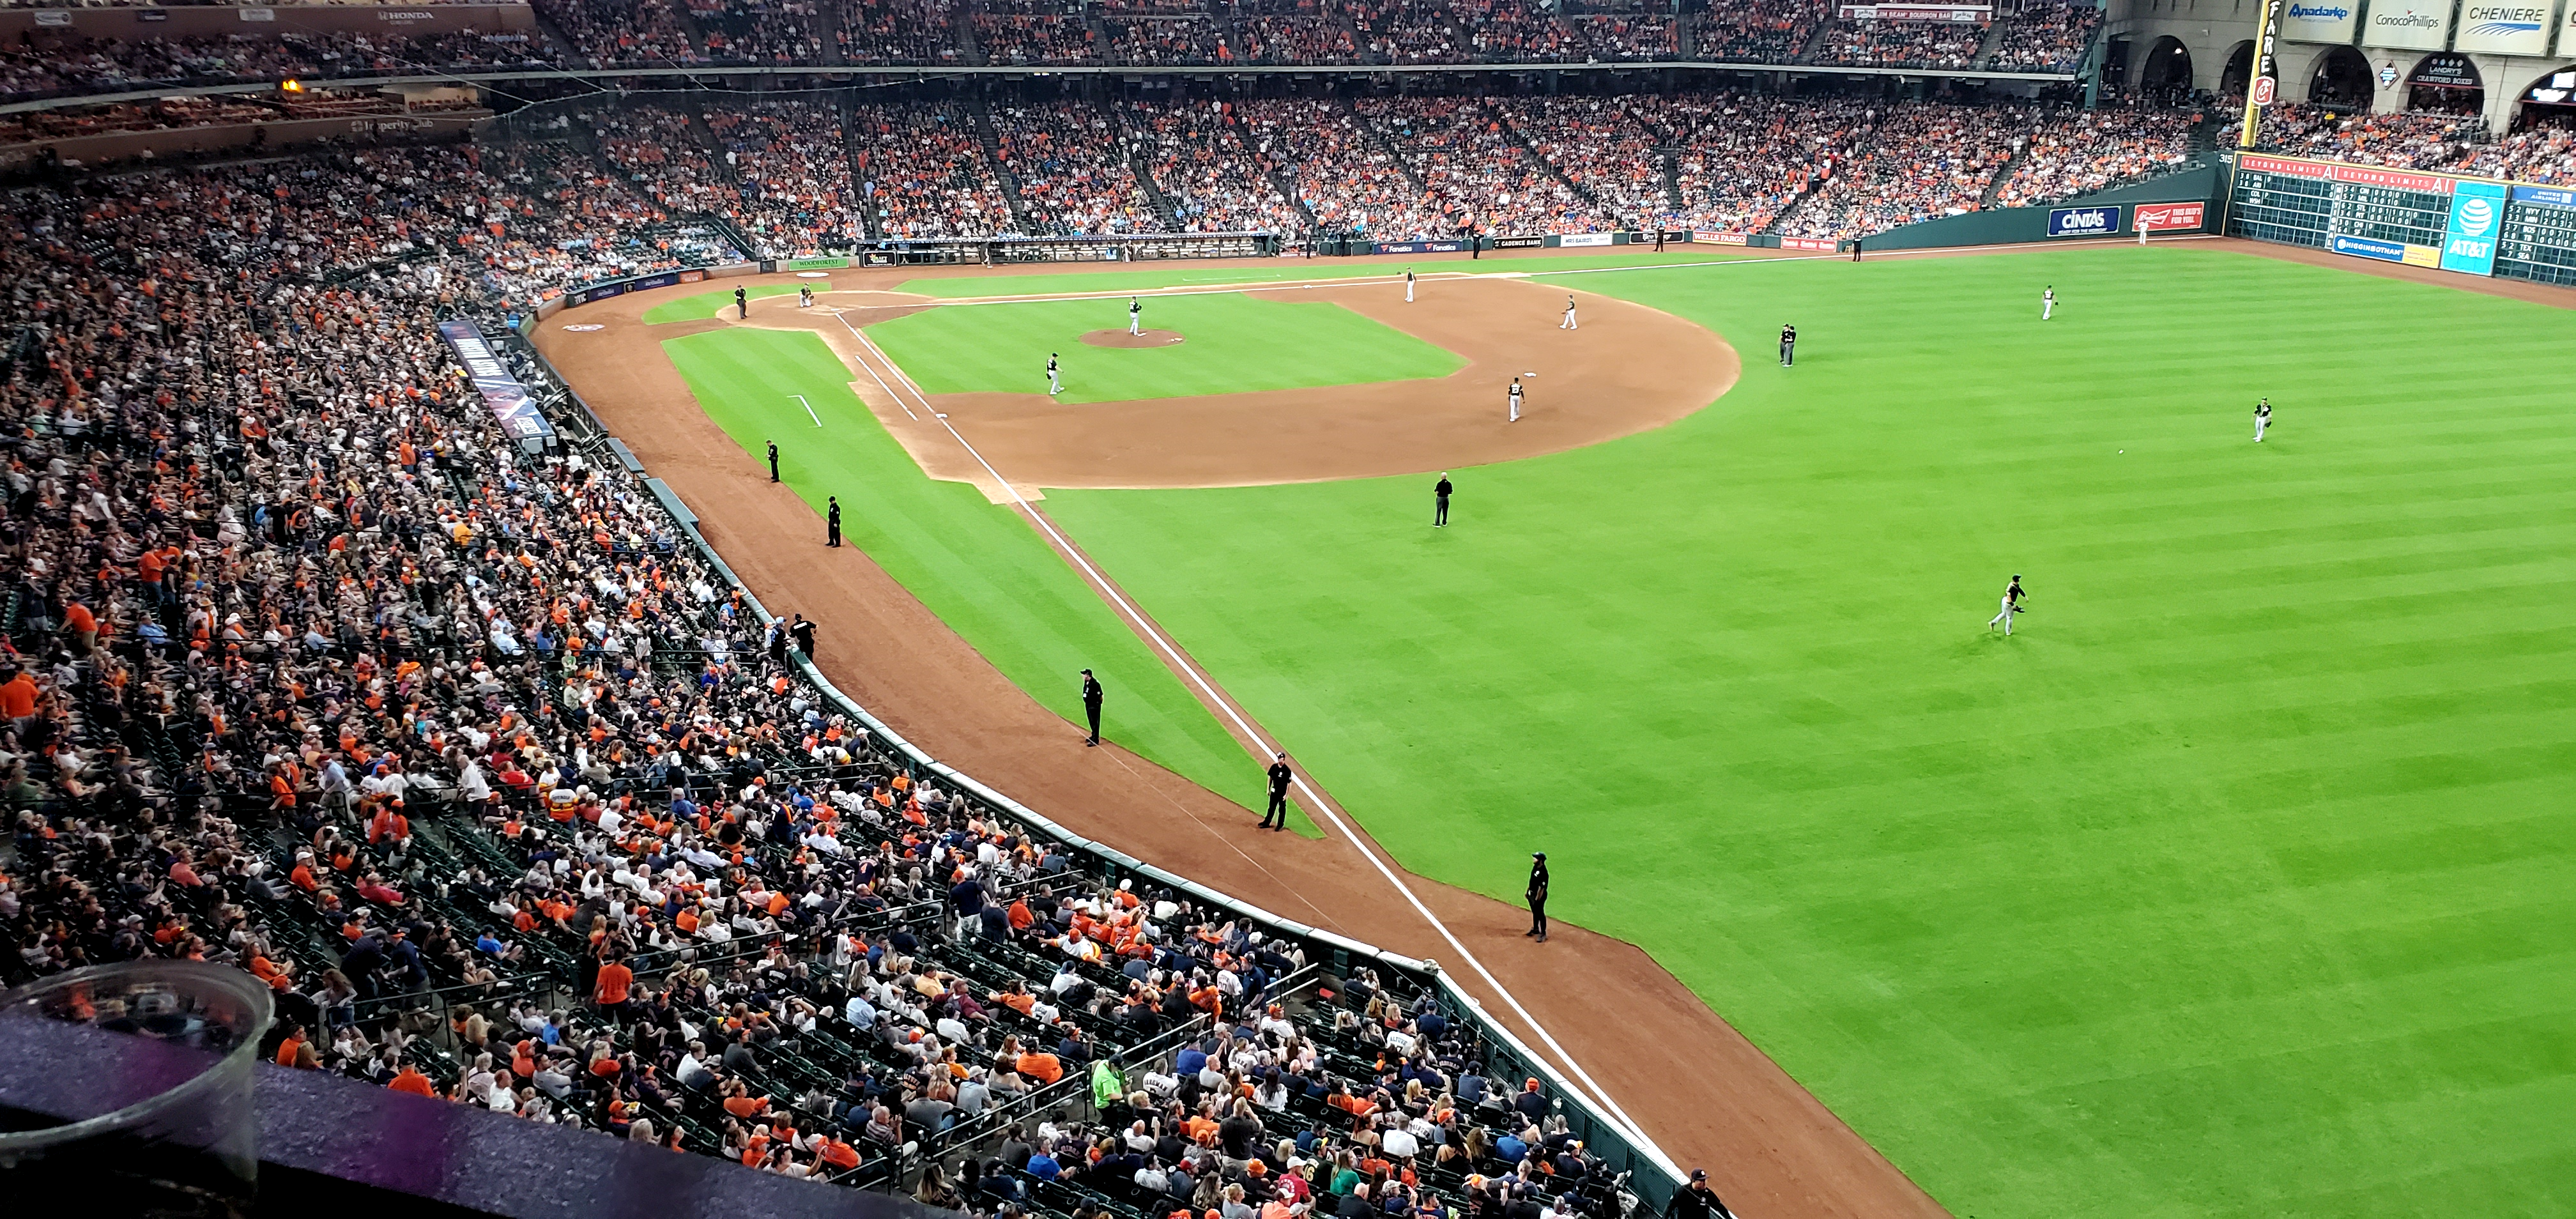 A sold-out crowd watches the Houston Astros play at Minute Maid park.